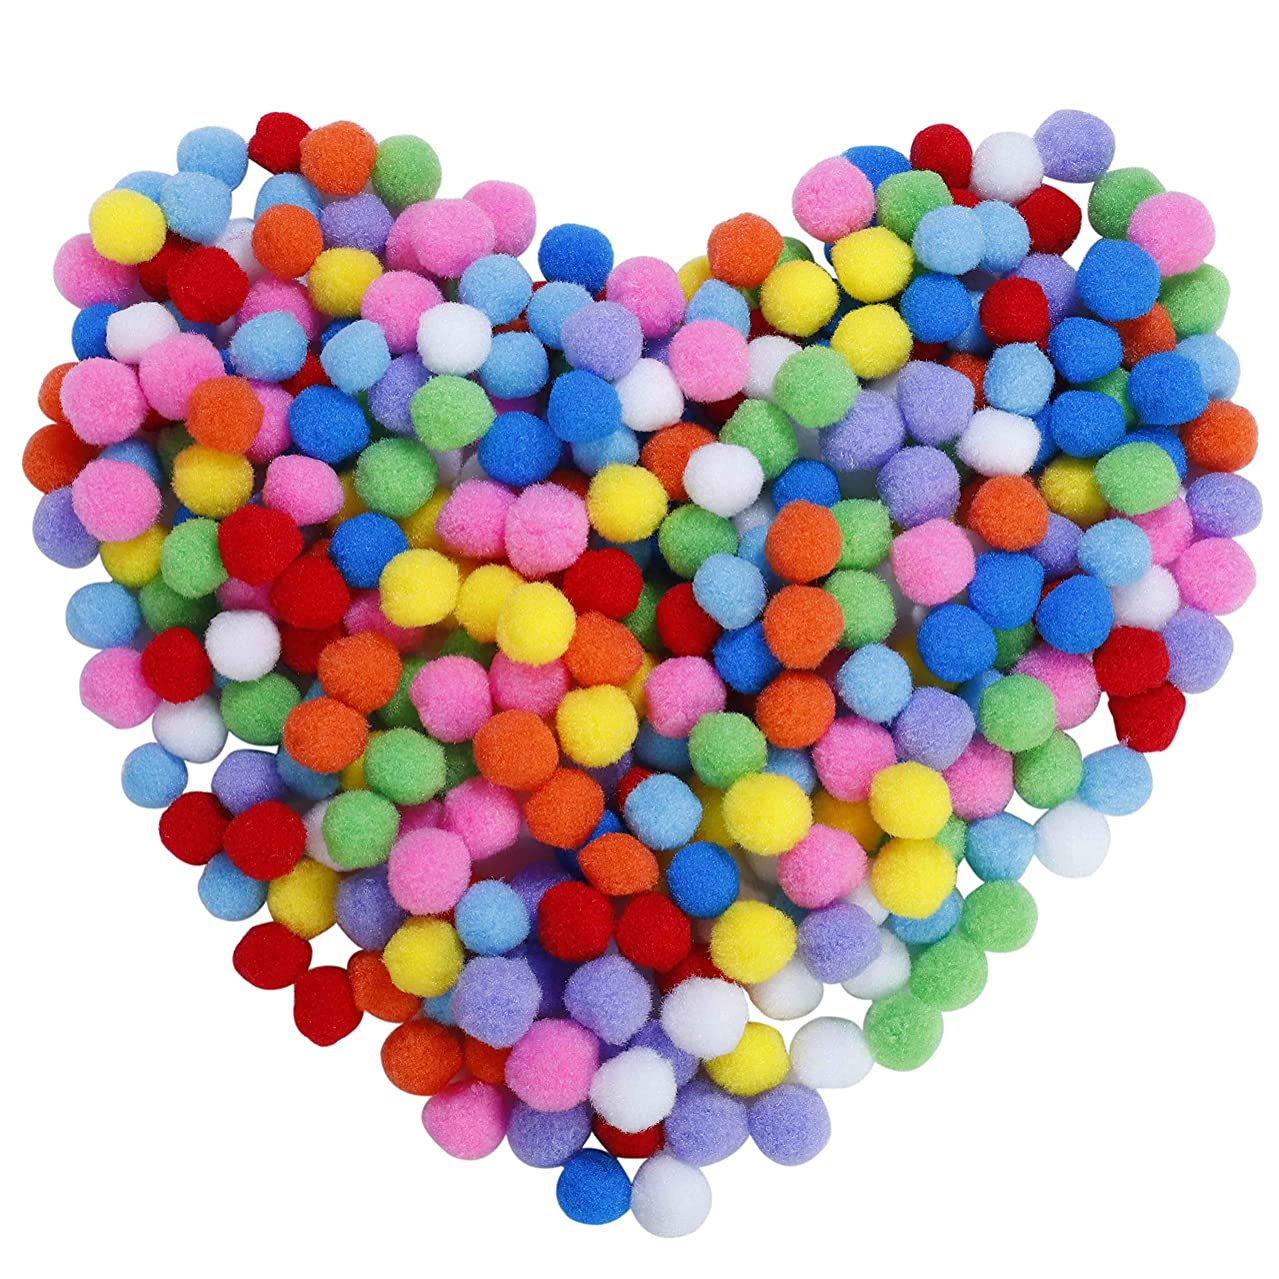 300 Pieces Craft Pom Poms Elastic Assorted Colored Mini Pompoms Balls 1 inch/25mm for Hobby Supplies and DIY Creative Crafts Decorations- Release Children Imagination